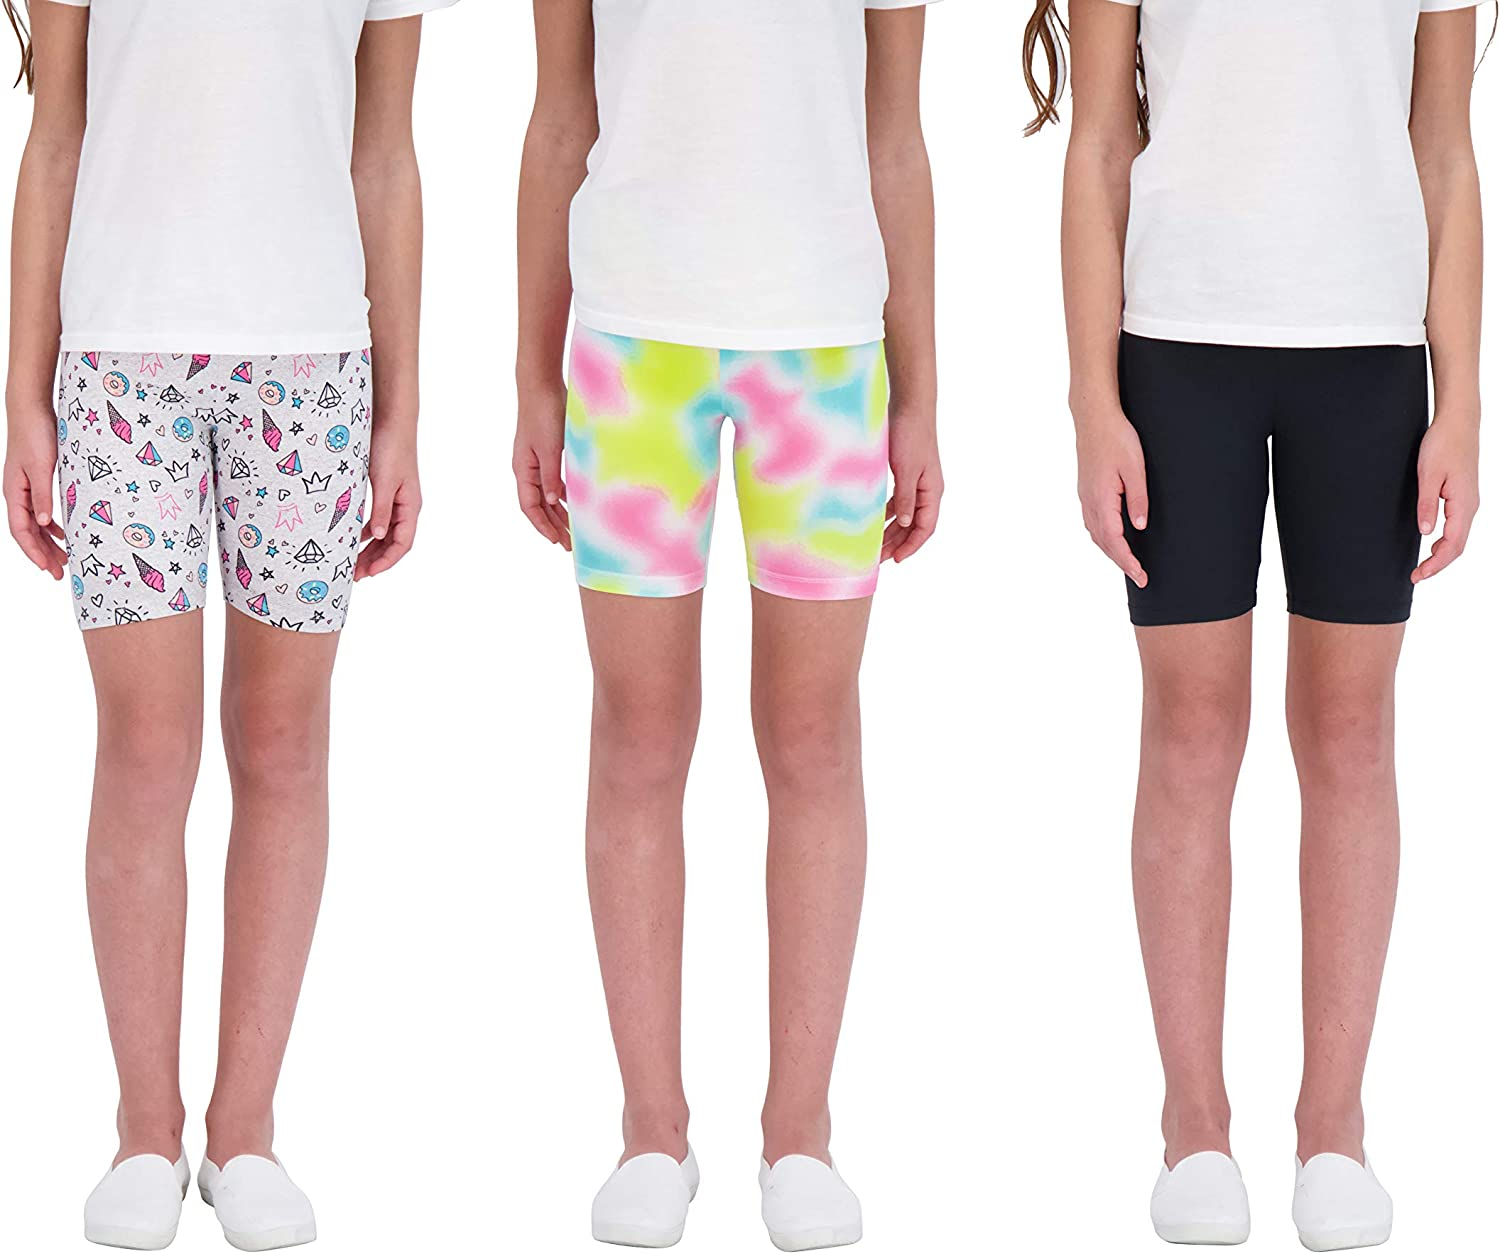 Star Ride We OFFer at cheap prices 3-Pack Girls Athletic Workout Bike Shorts Popular product Clo